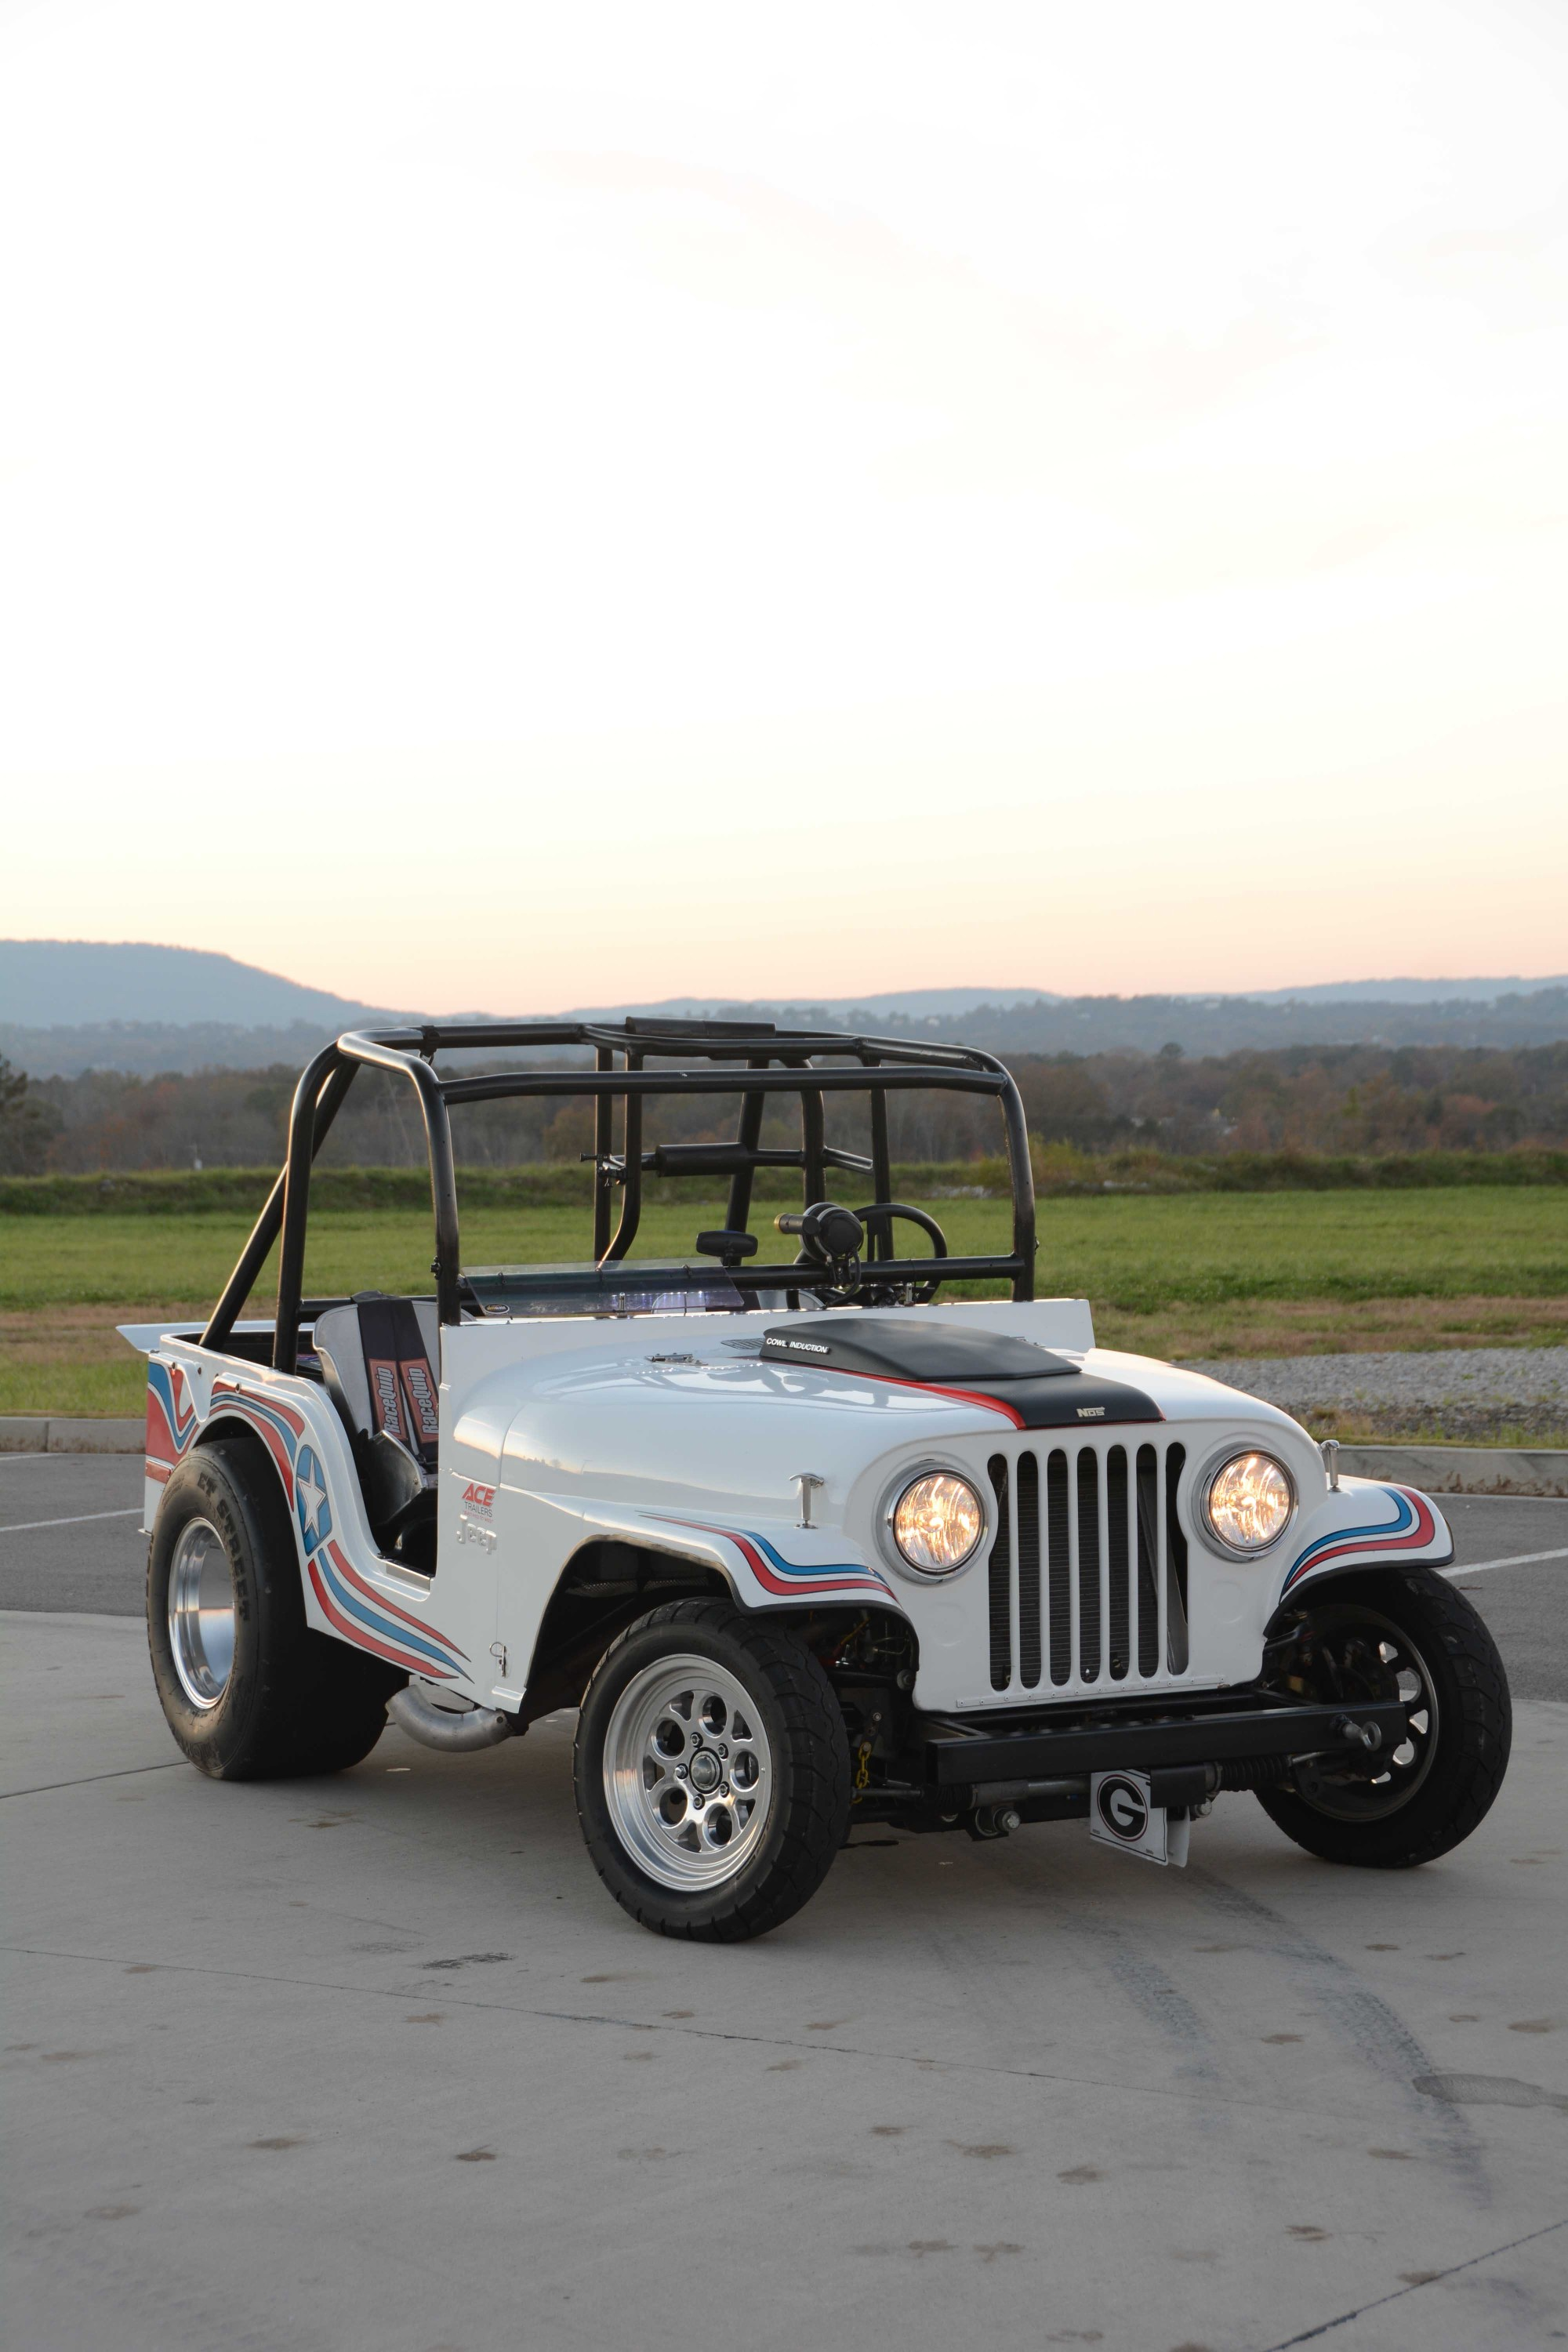 hight resolution of this boosted jeep cj5 is ready for drag racing action